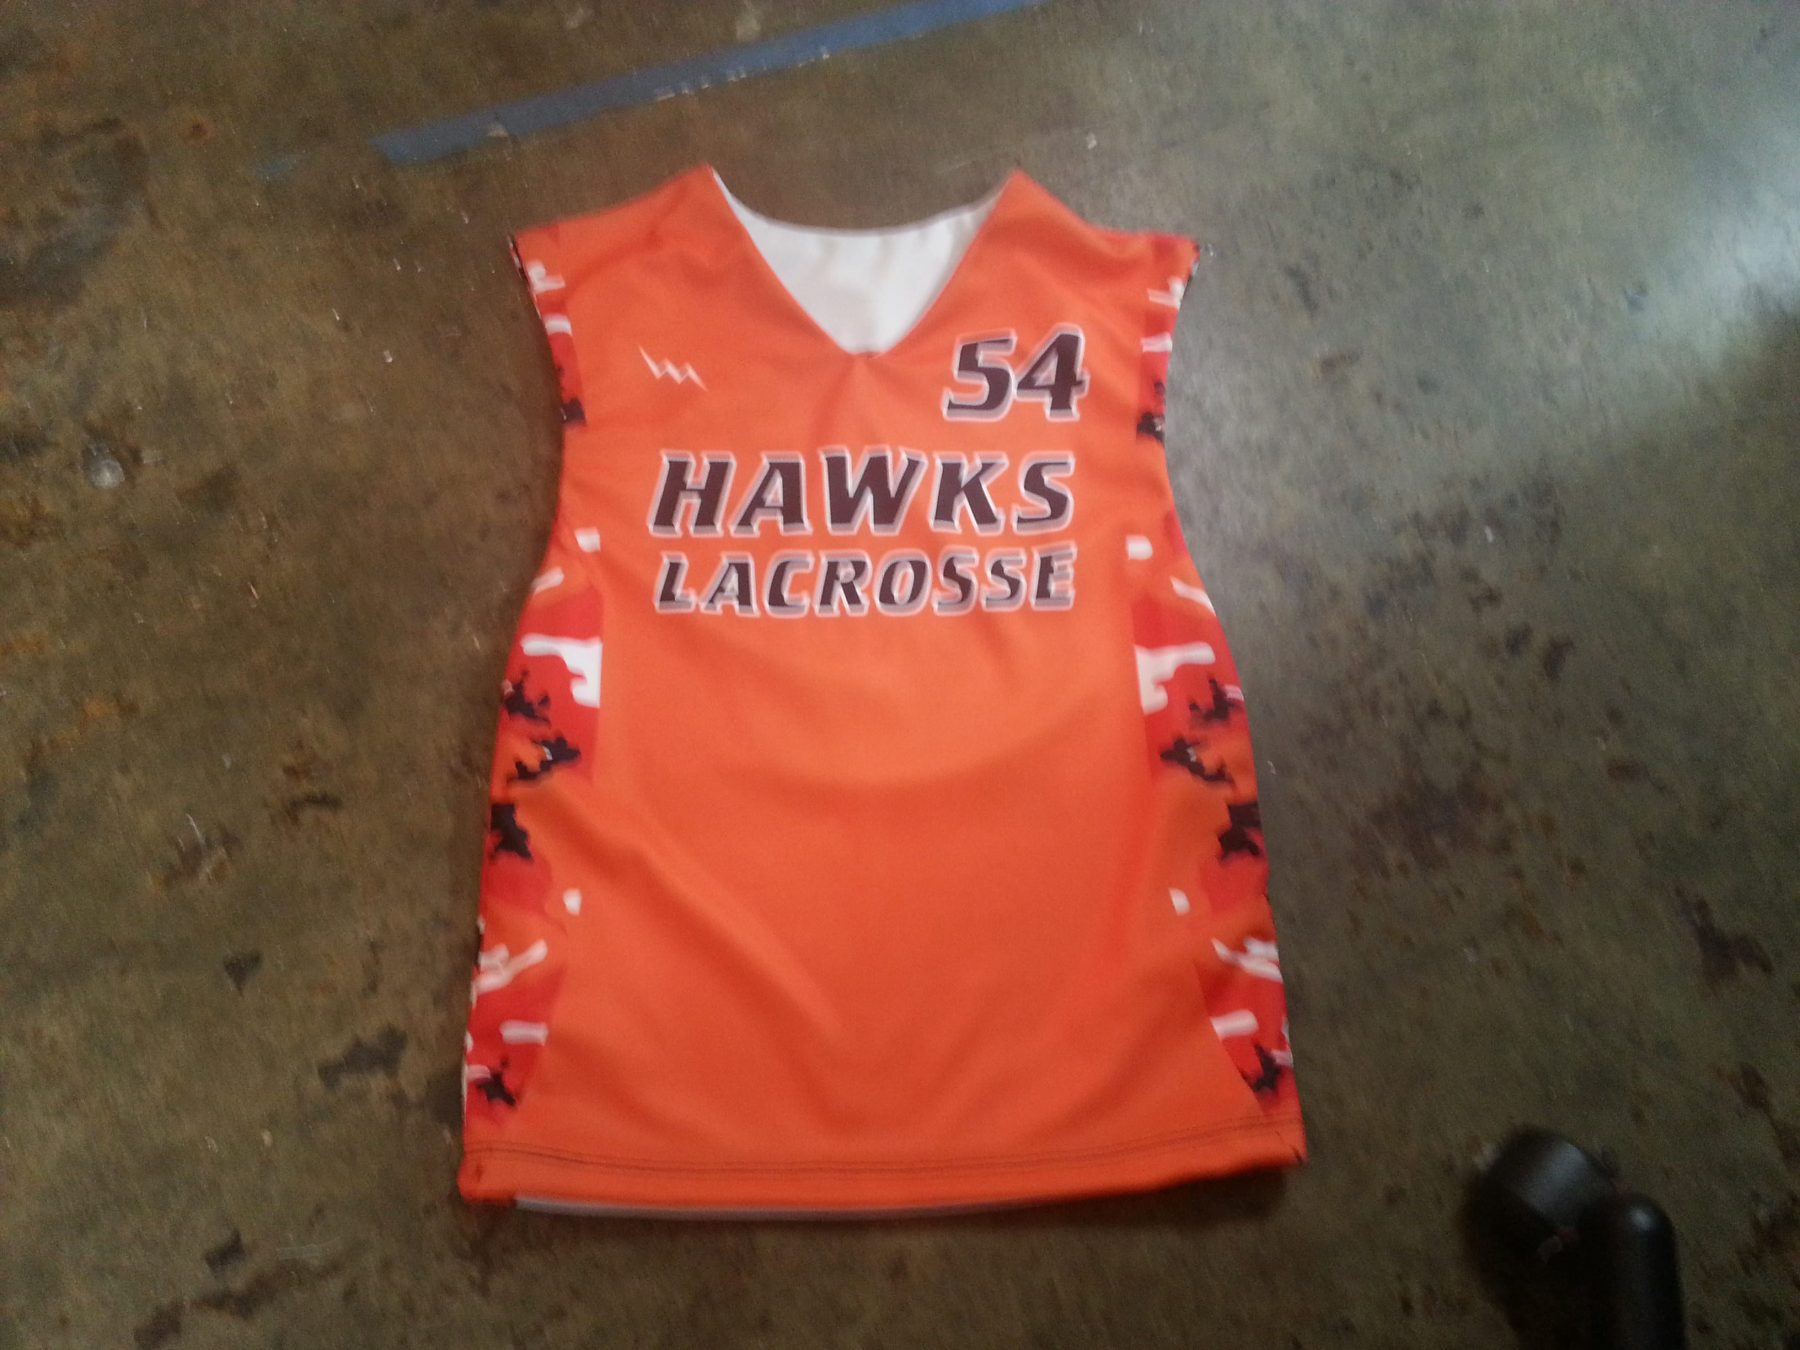 pittsburgh lacrosse pinnies